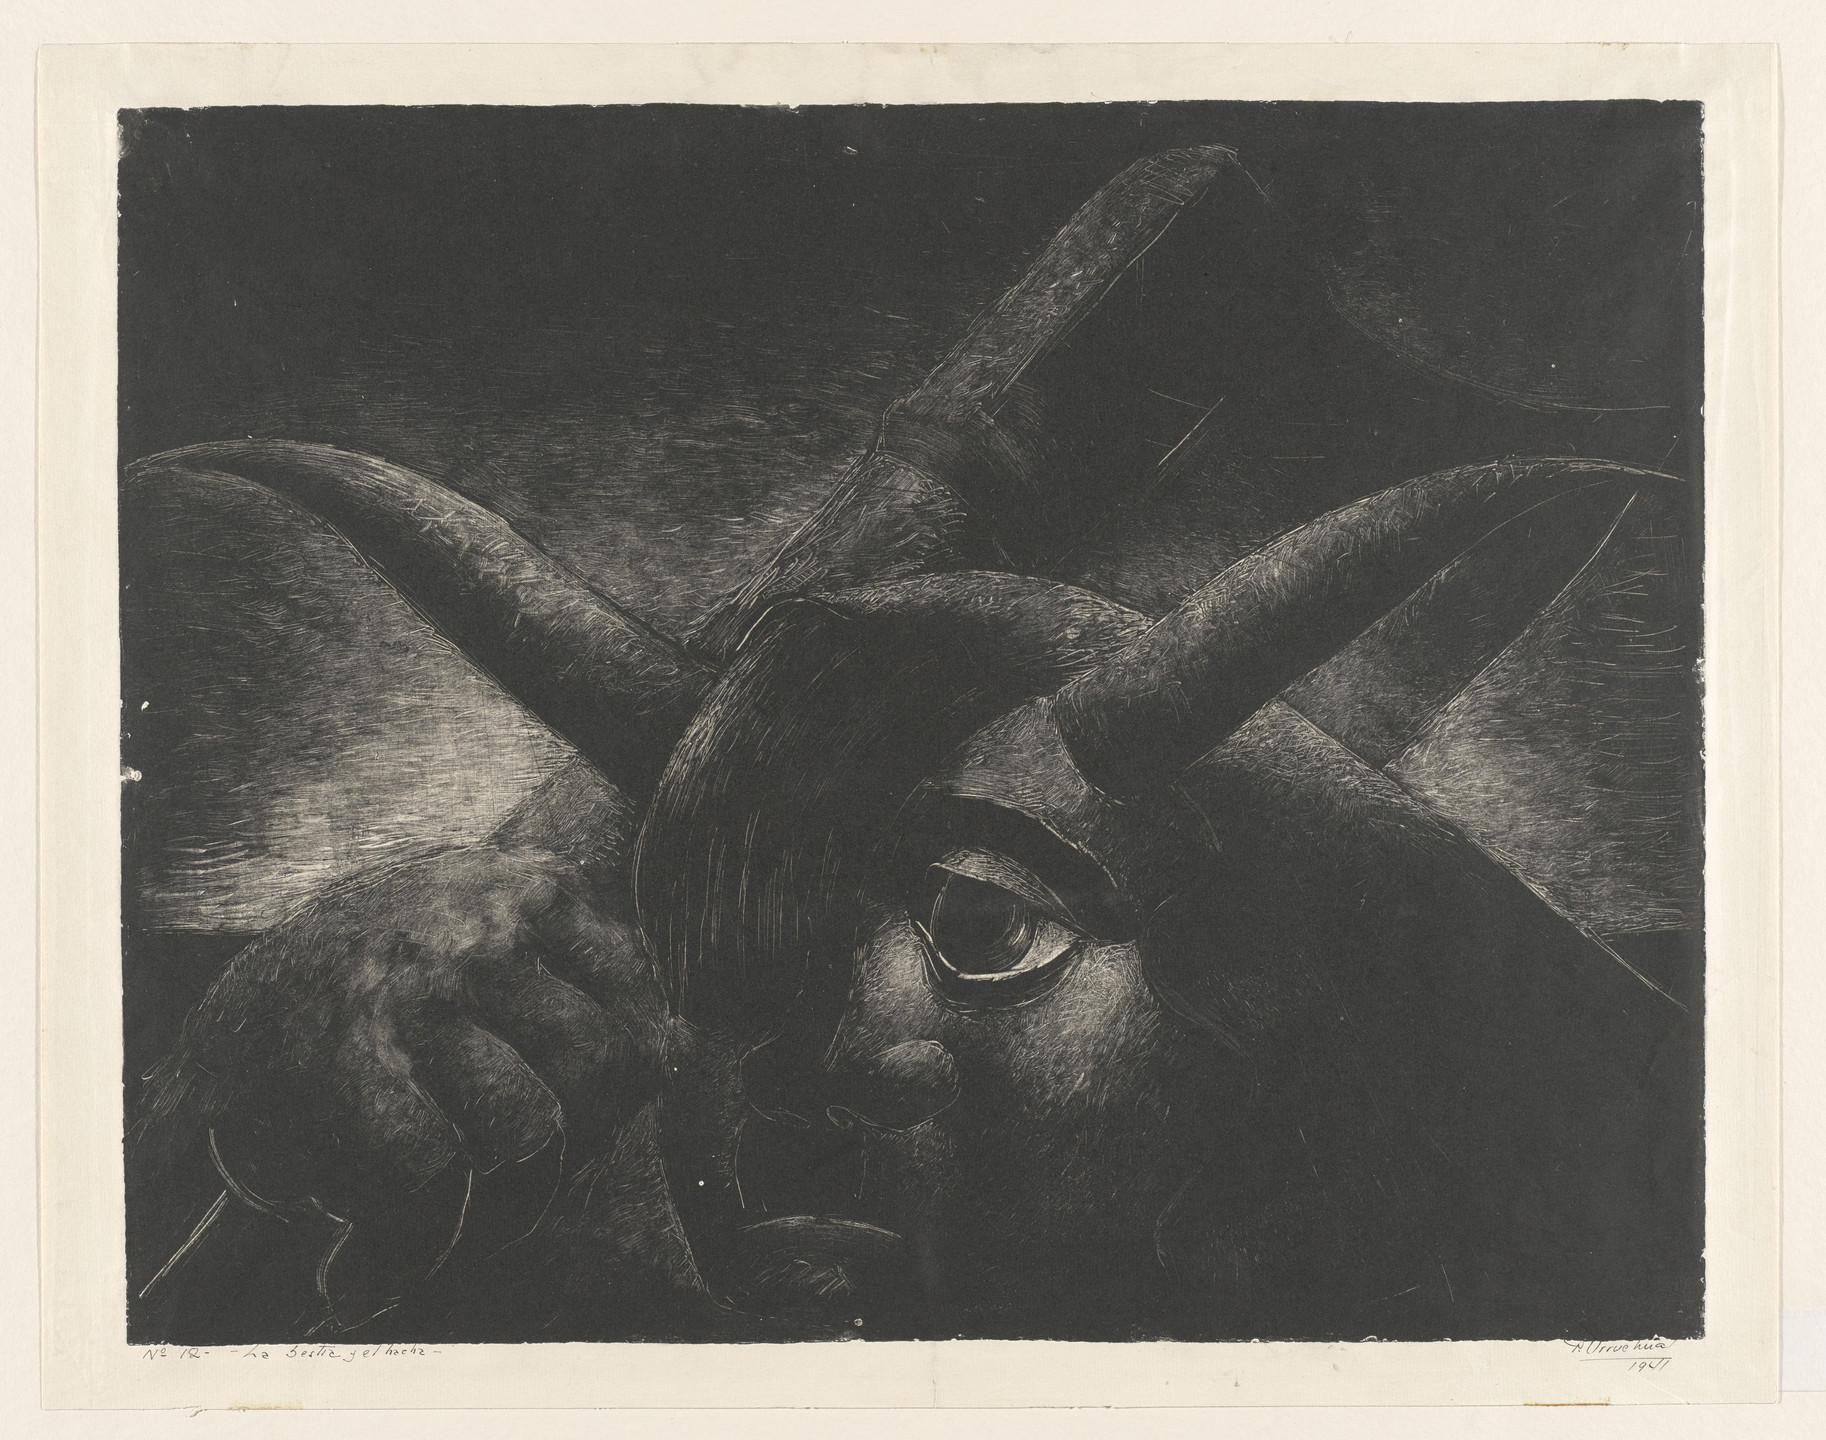 Demetrio Urruchúa. The Beast and the Axe (La Bestia y el hacha). 1941